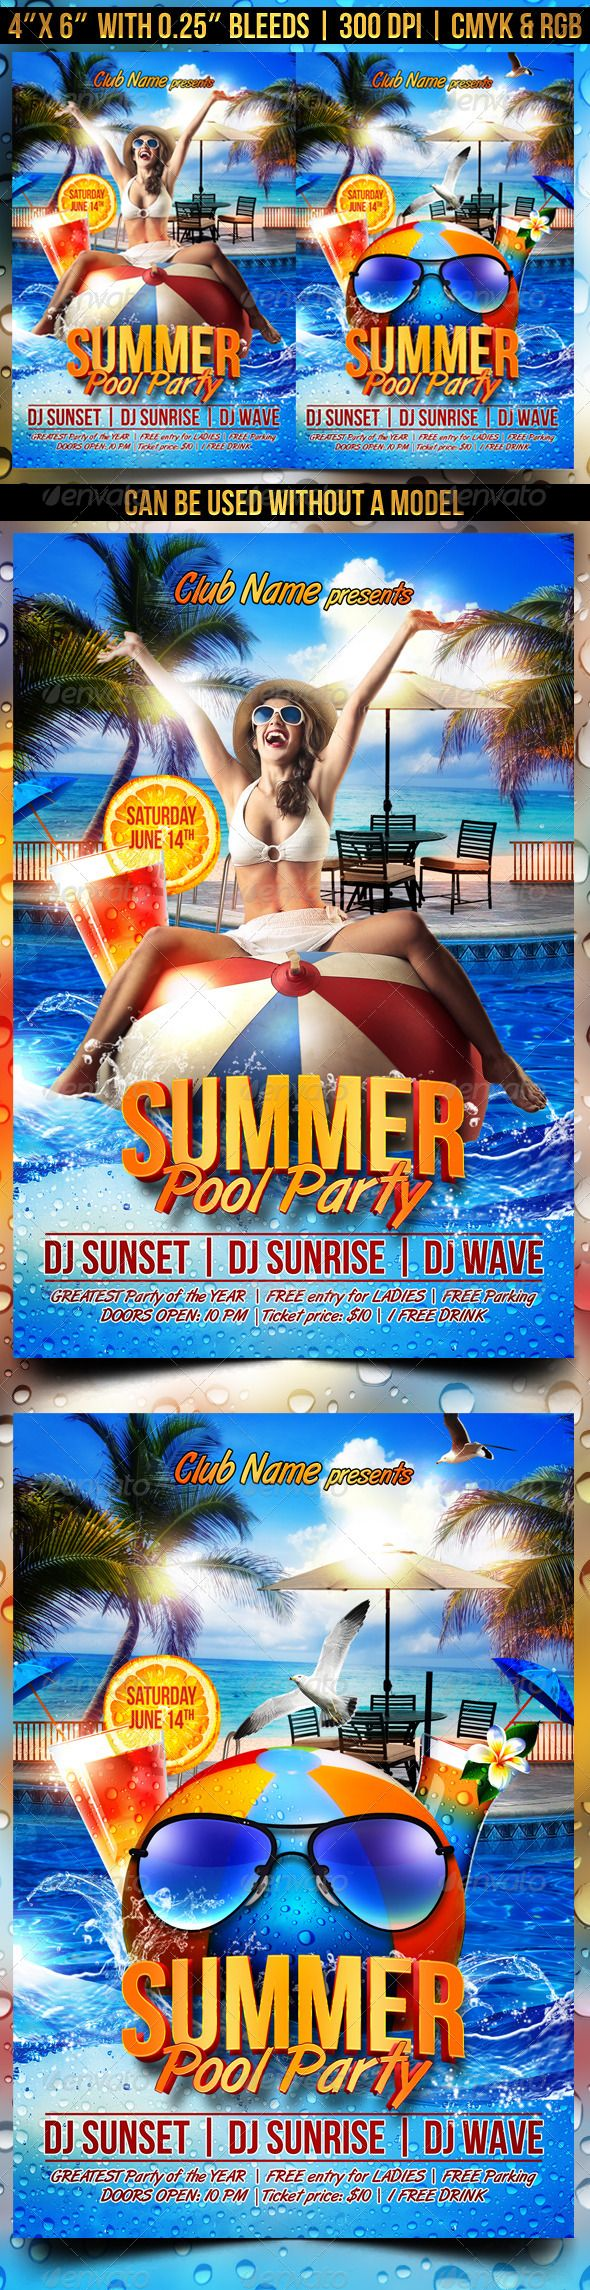 summer pool party flyer party events flyer template and pools summer pool party flyer template psd buy and graphicriver